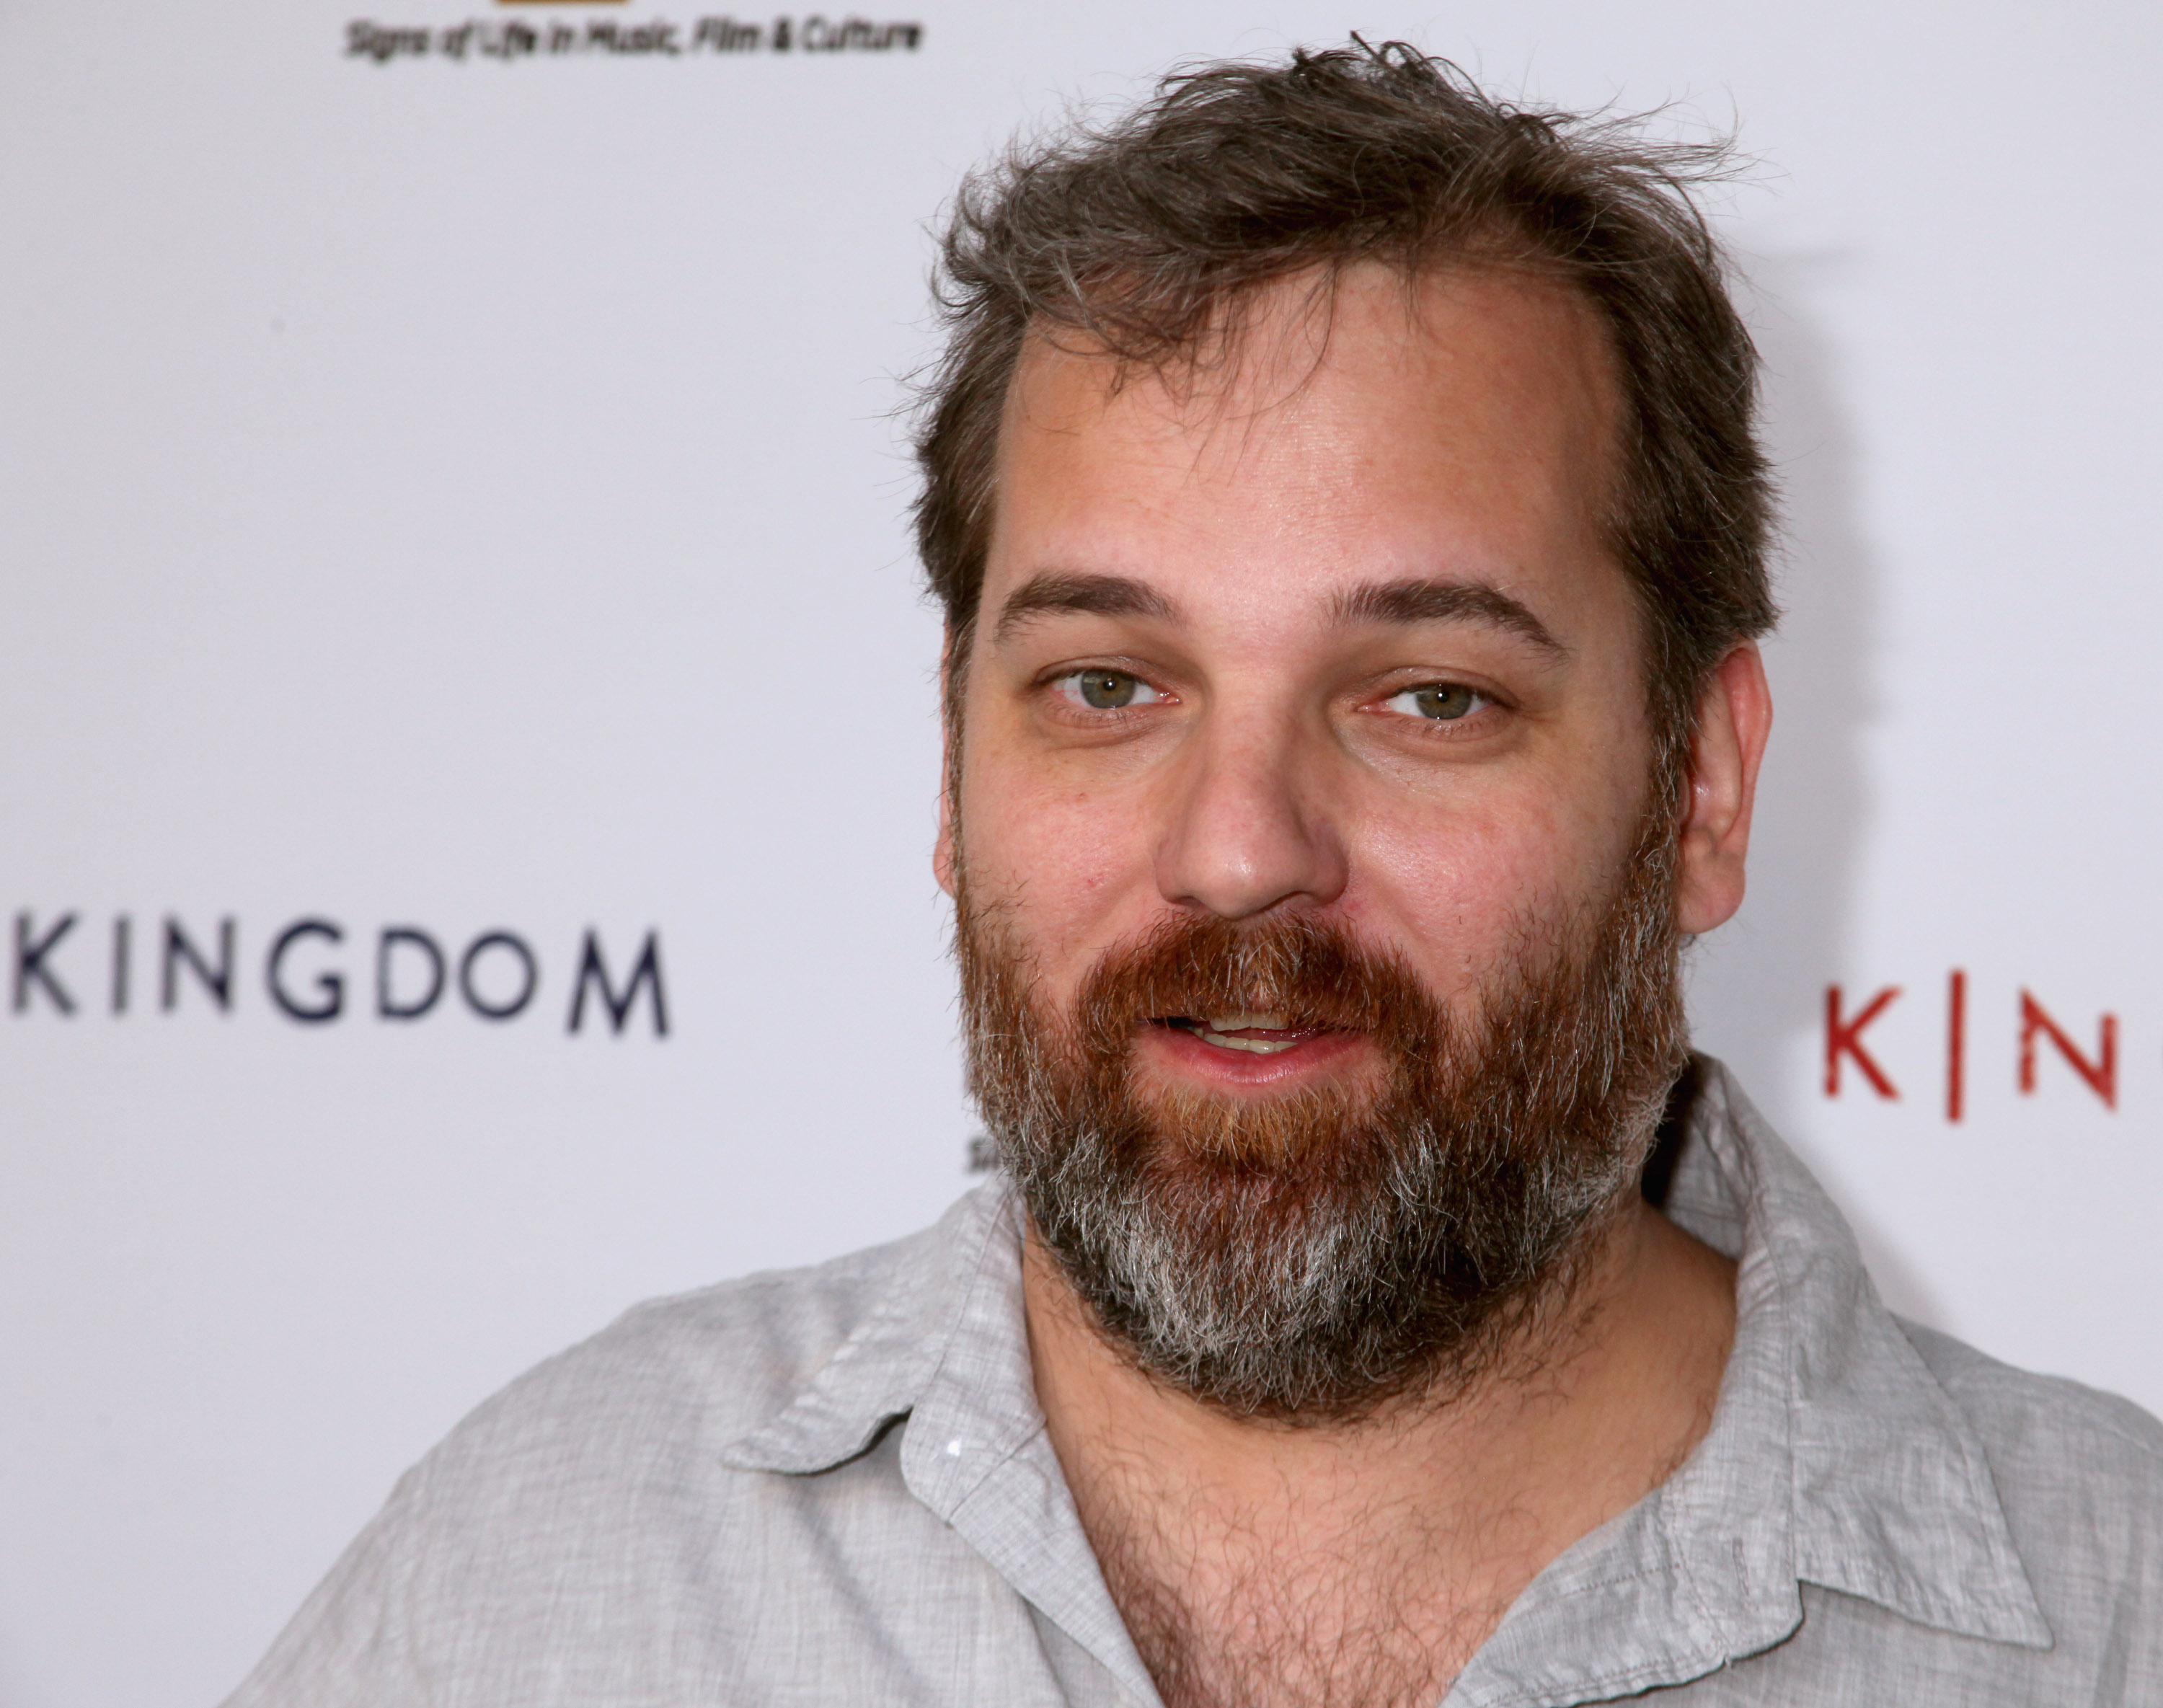 Dan Harmon attends the  Kingdom Come  - Los Angeles Premiere at Harmony Gold Theatre on October 2, 2012 in Los Angeles, California.